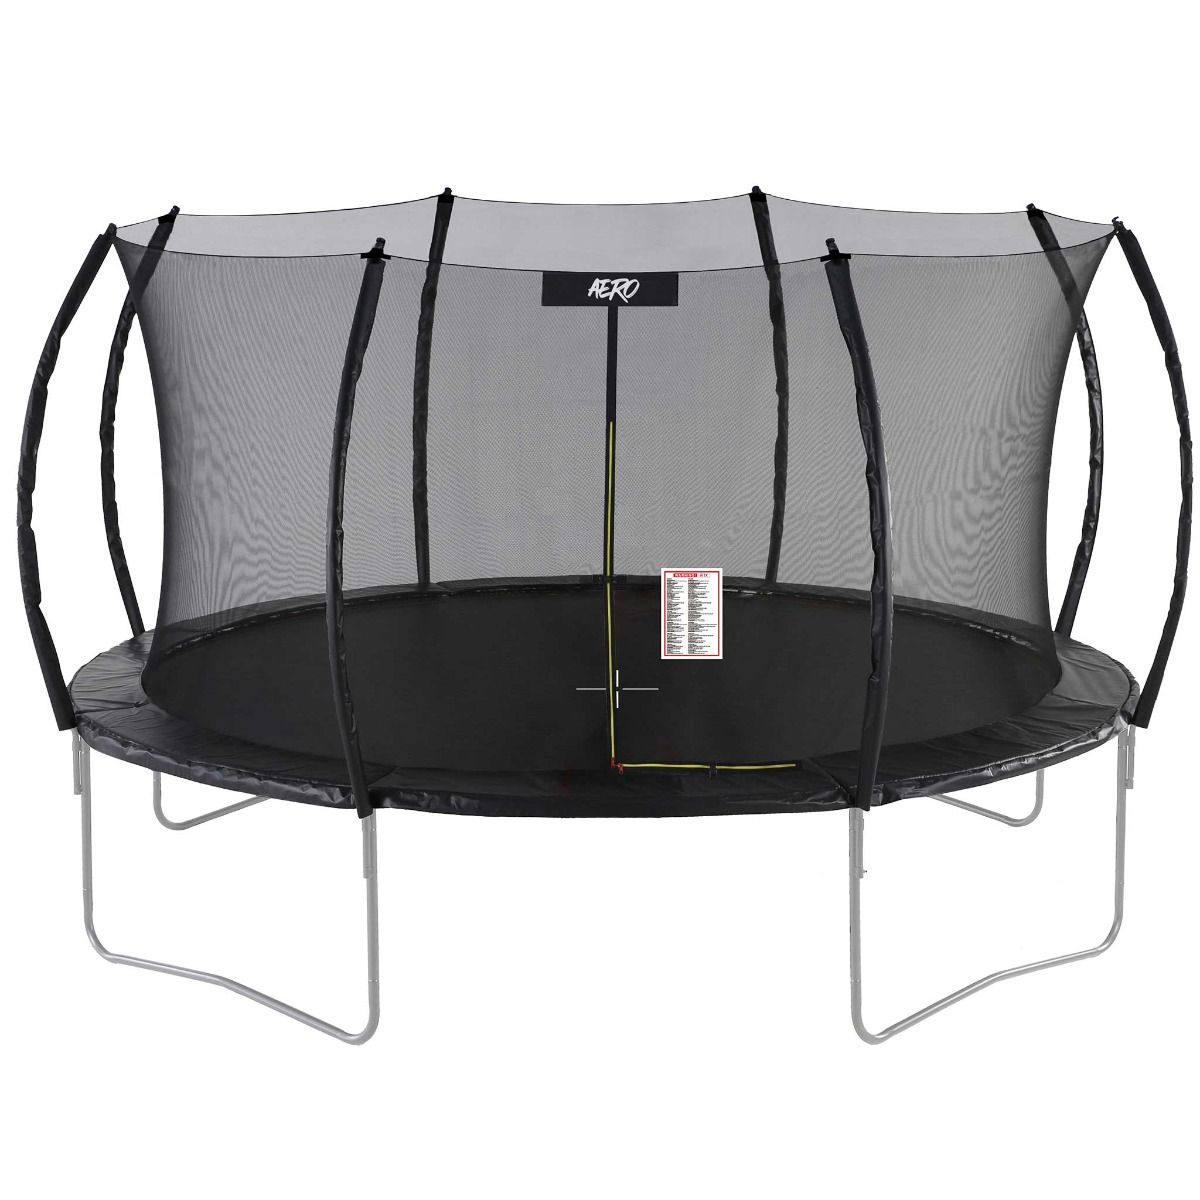 React Aero Trampoline 3,66m with a Safety Net